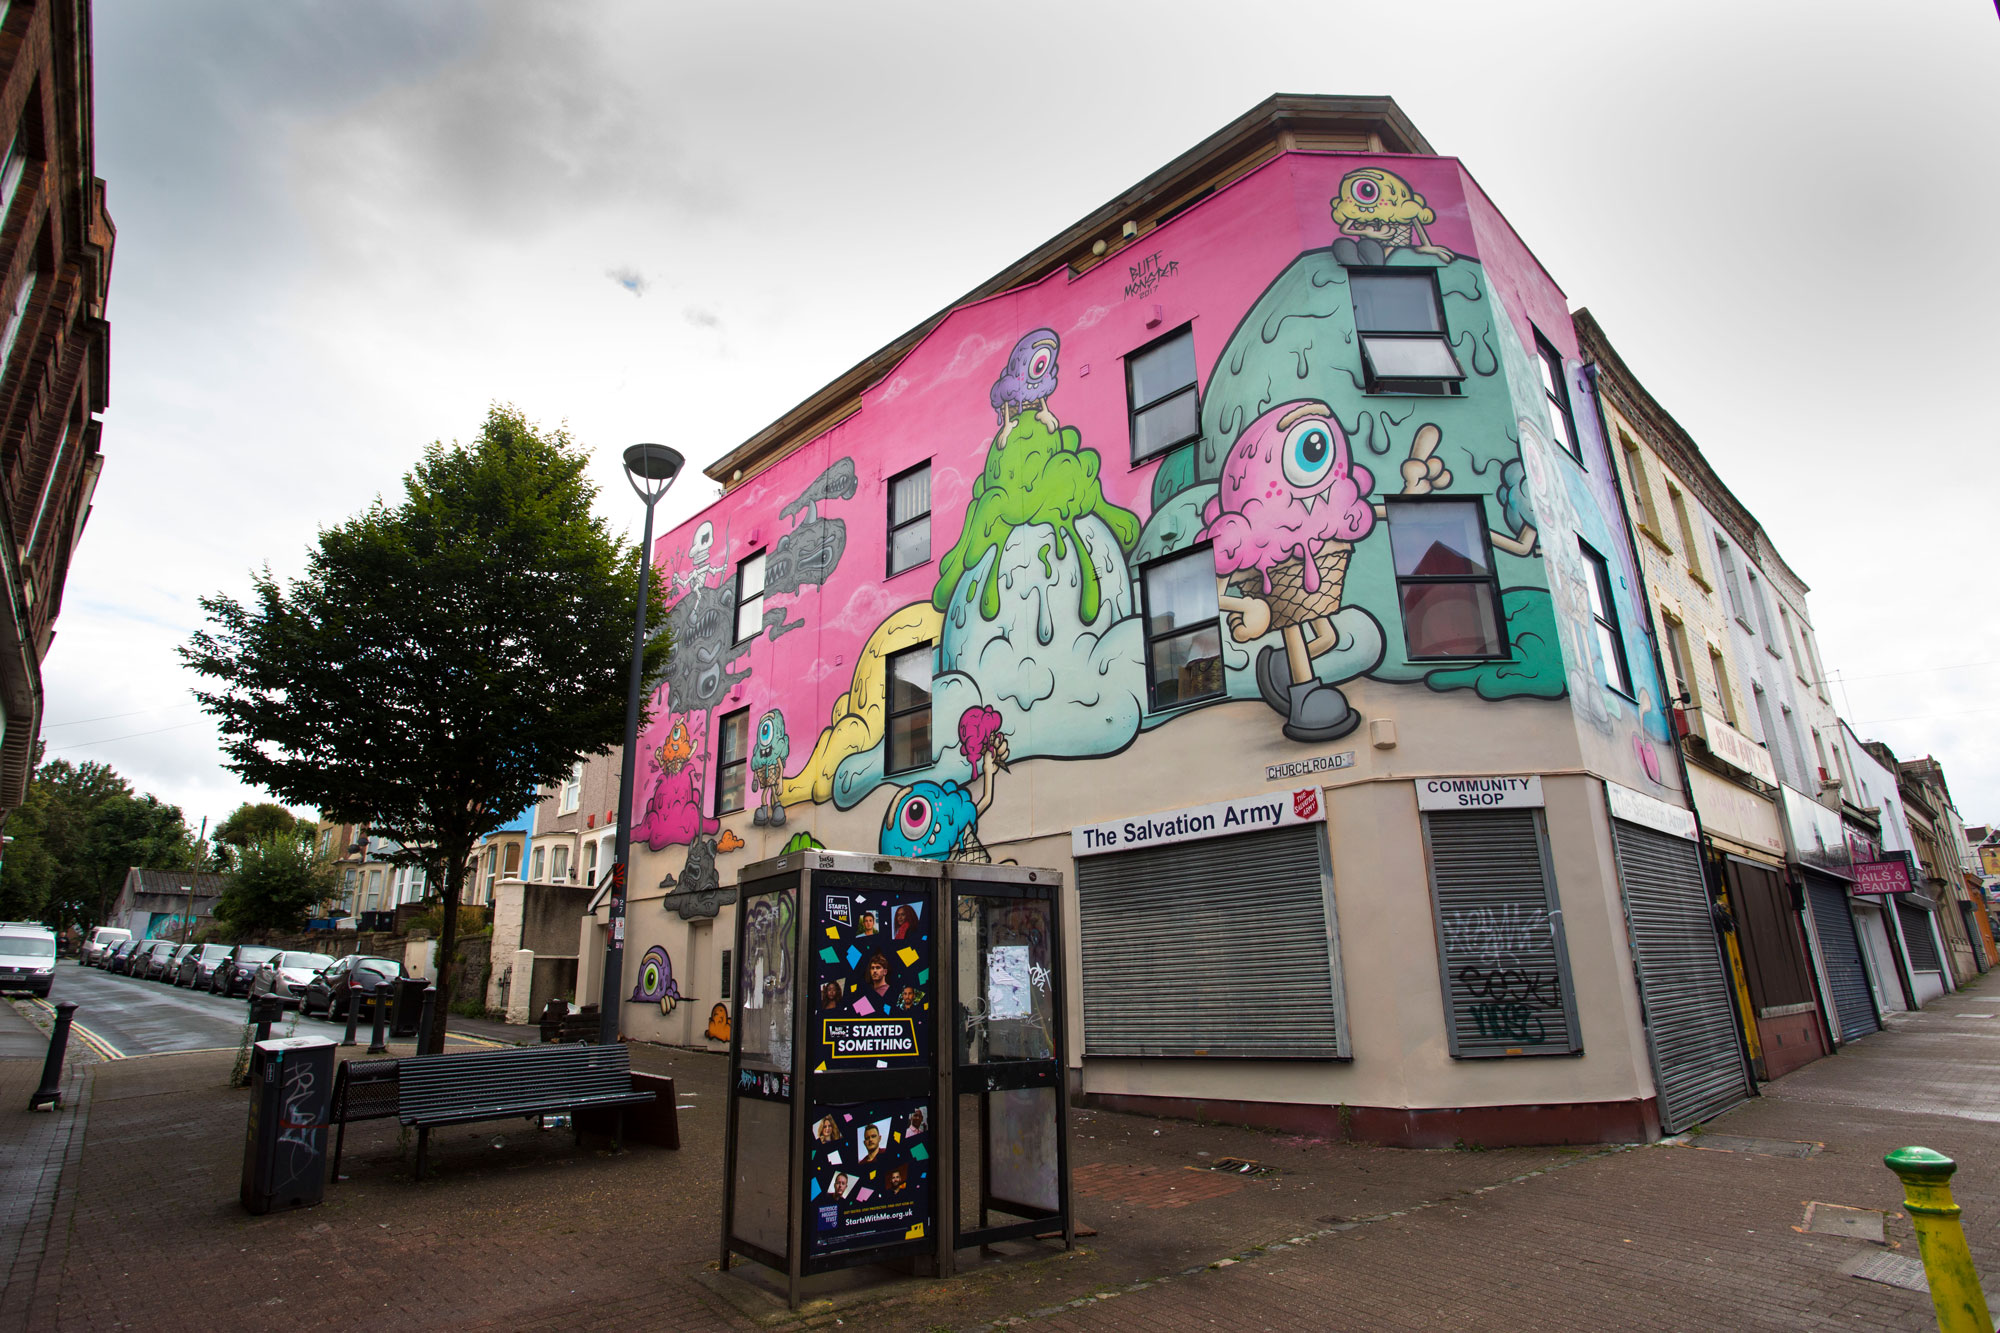 American artist Buff Monster on The Salvation Army shop in Bristol, Upfest 2017. Photo: Paul Box